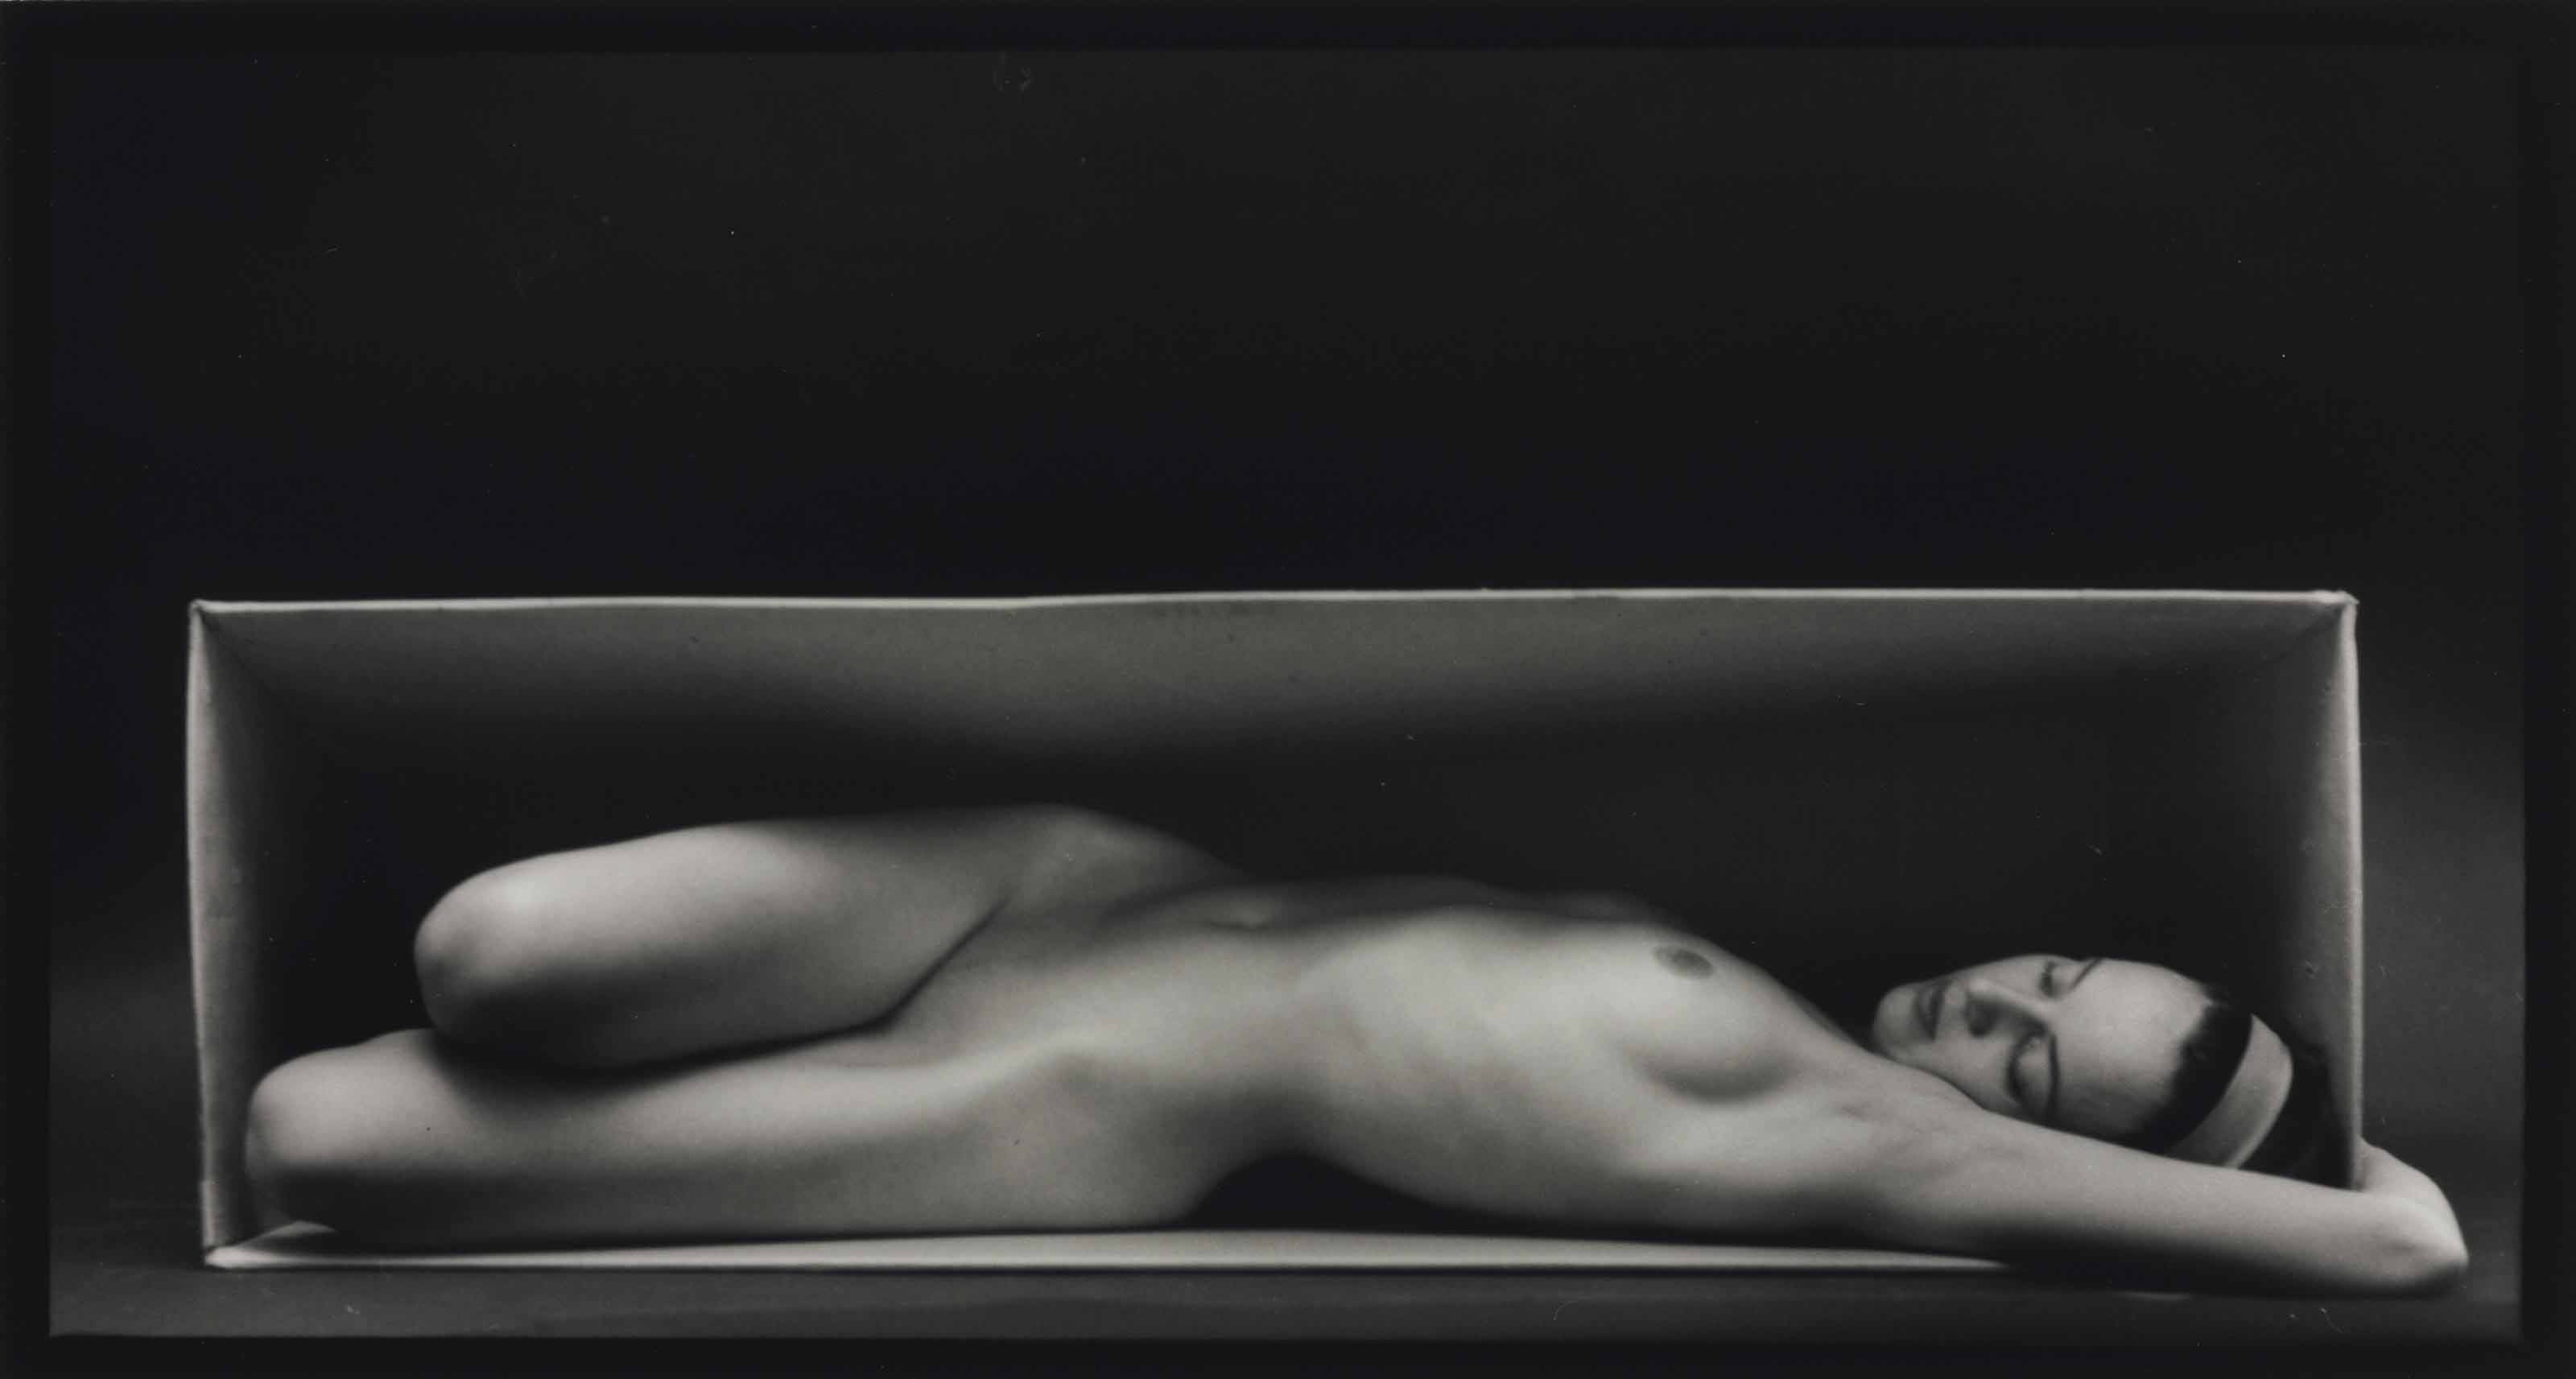 In the Box - Horizontal, 1962